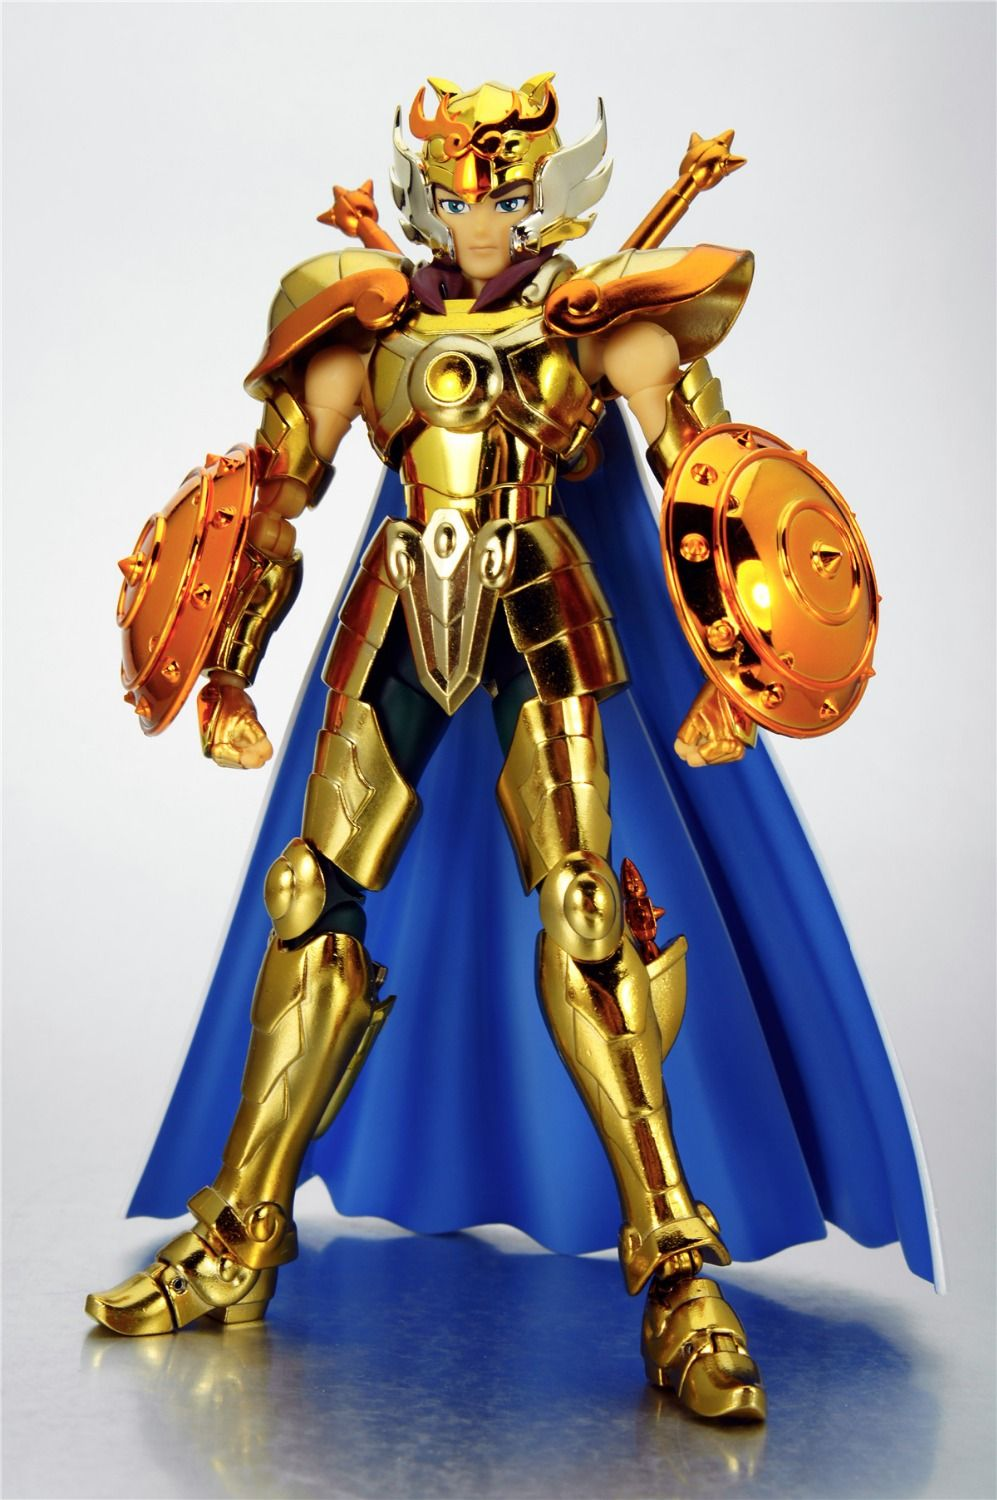 Click To Buy In Stock Cs Overspeed Ex 2 0 Saint Seiya Libra Dohko Ex Myth Cloth Metal Armor Action Figure Saint Seiya Action Figures Action Figures Toys